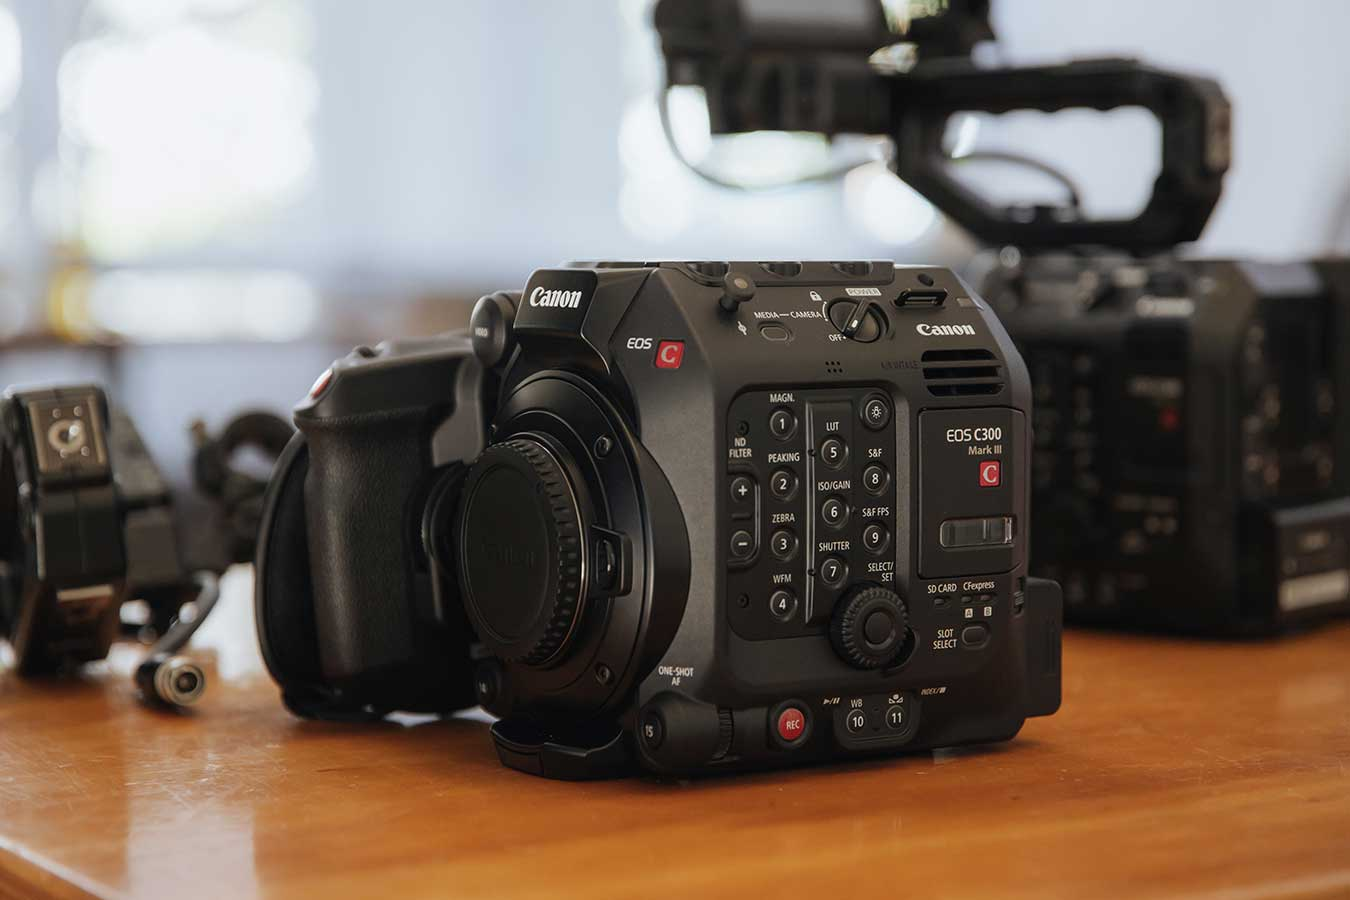 The Canon C300 Mark III launches today